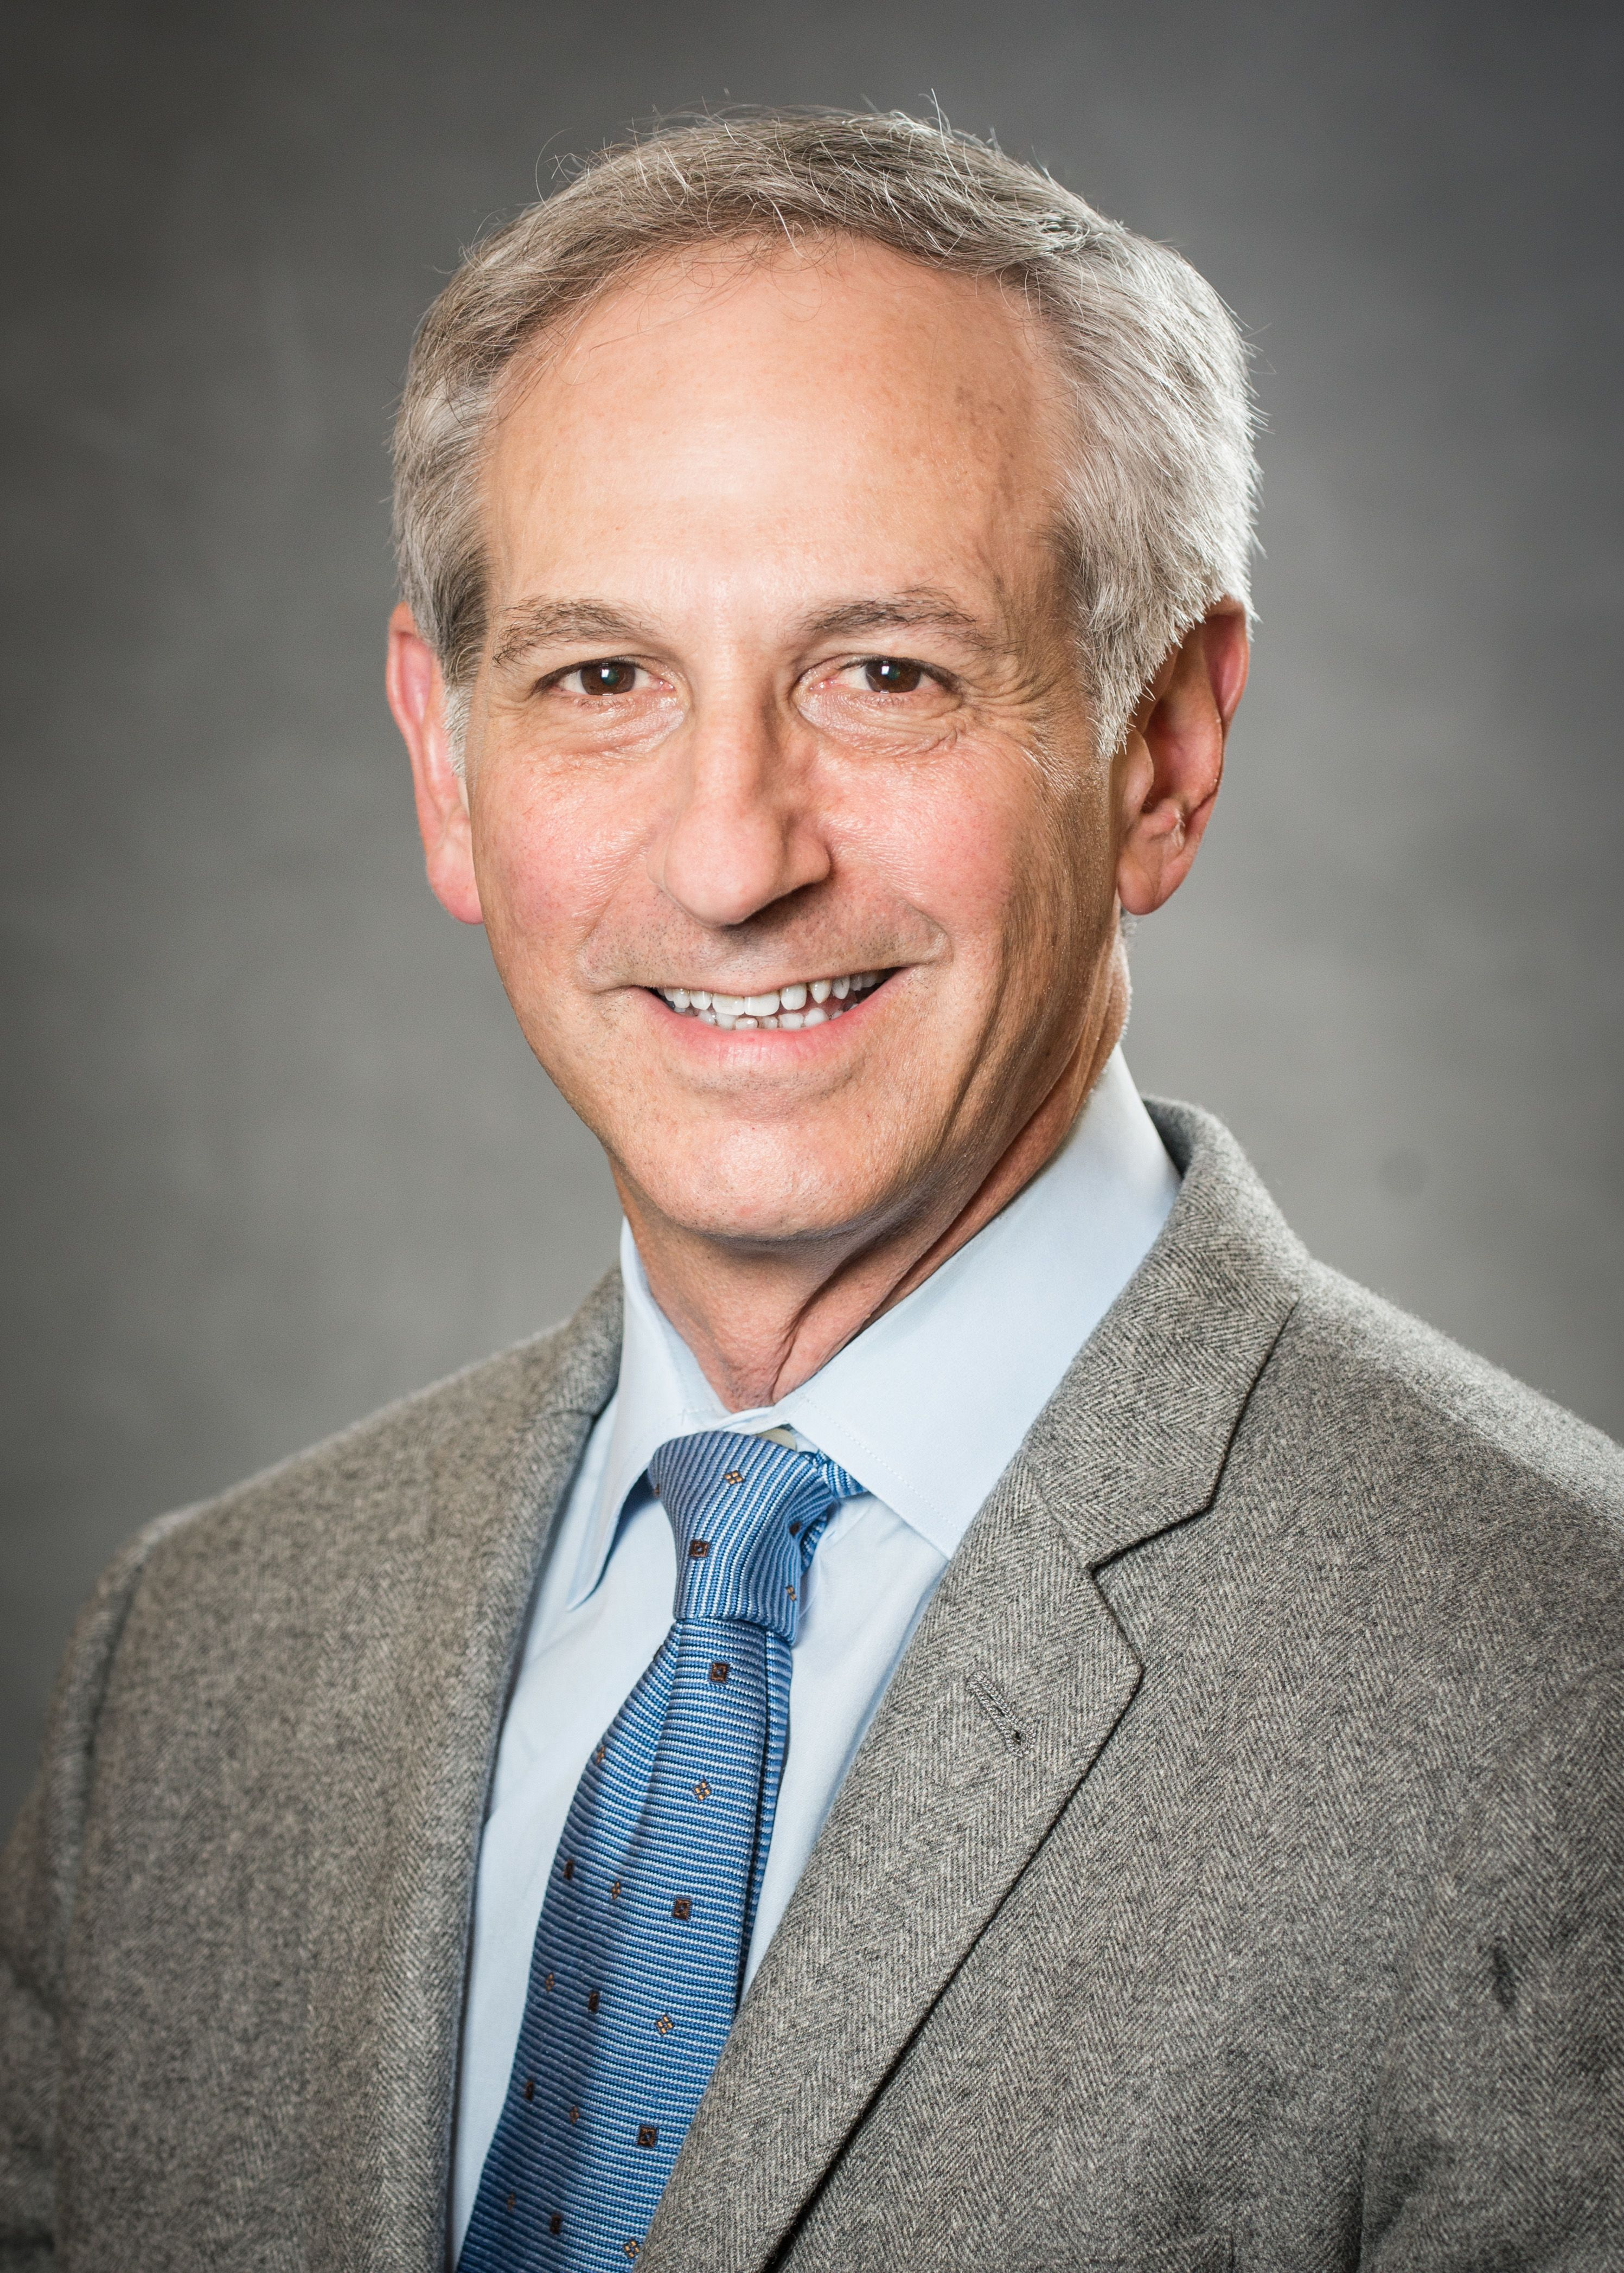 Mark Schiffer, MD, wearing a blue tie and a grey jacket